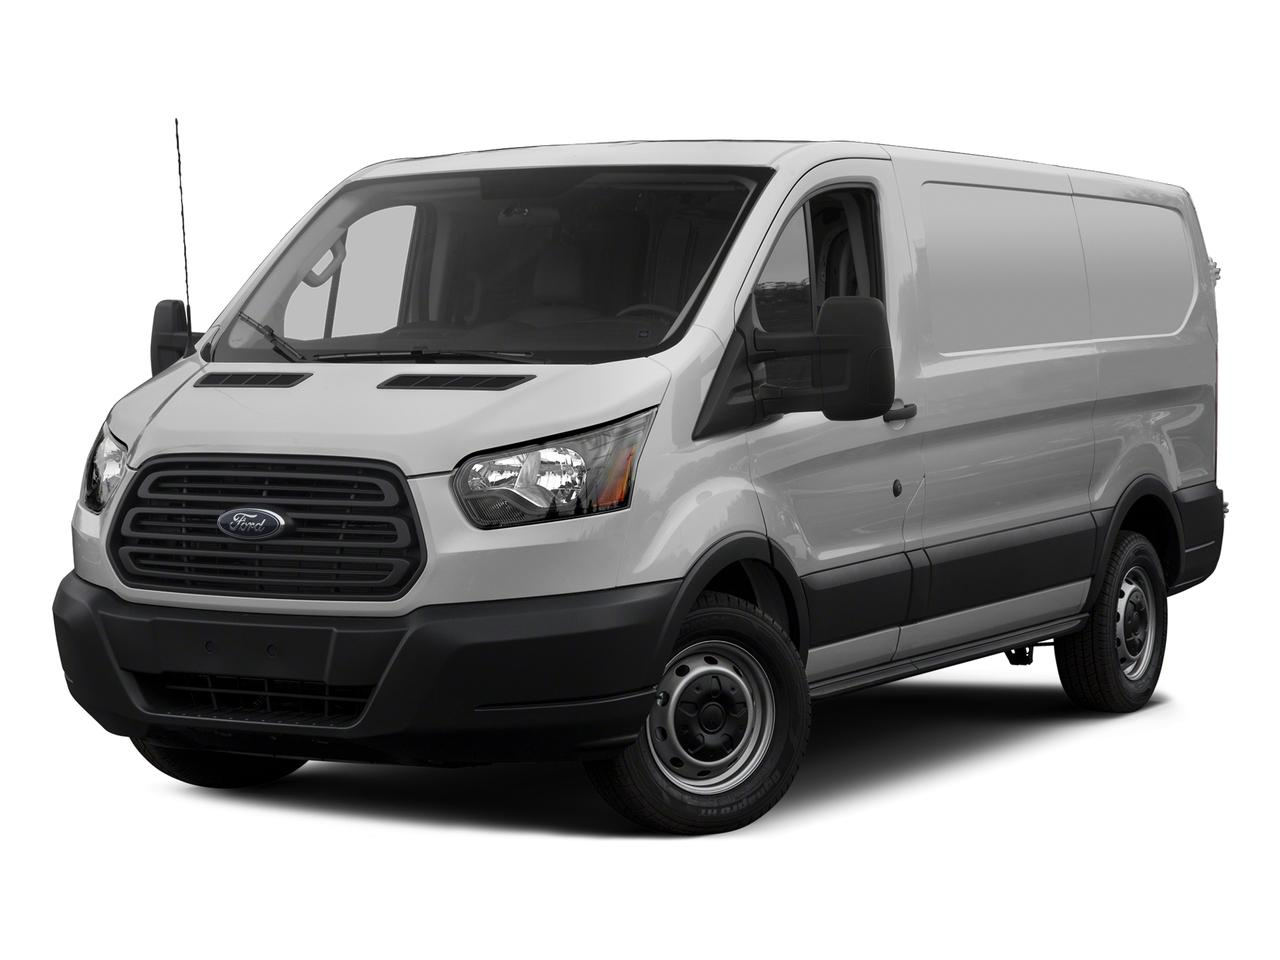 2015 Ford Transit Cargo Van Vehicle Photo in Doylestown, PA 18902